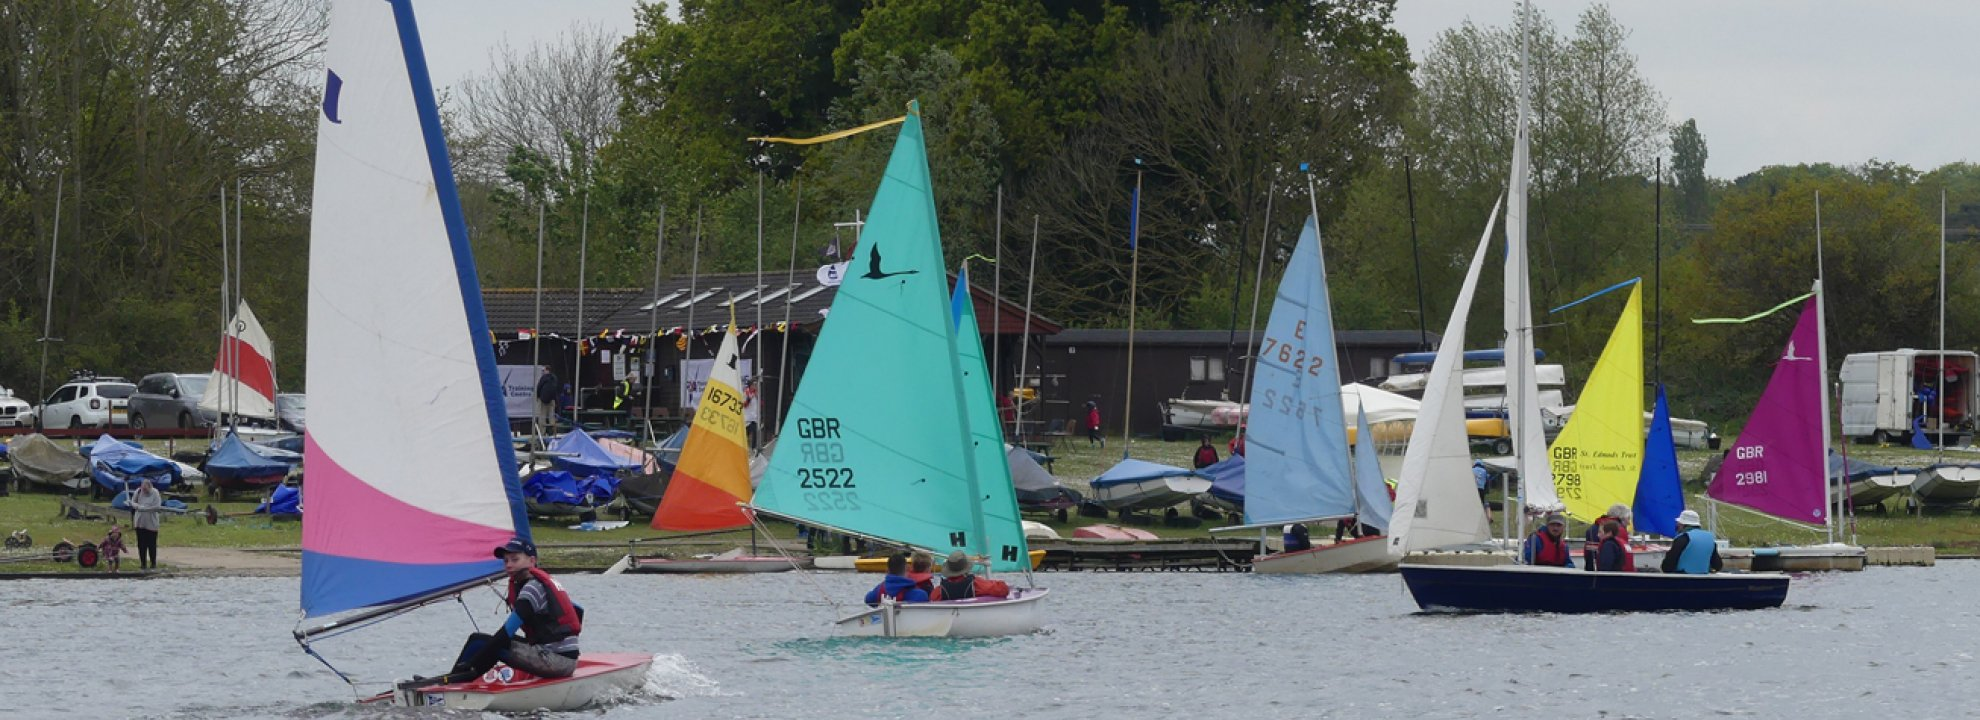 SESCA's Rescheduled RYA #DiscoverSailing Club Open Day Banner